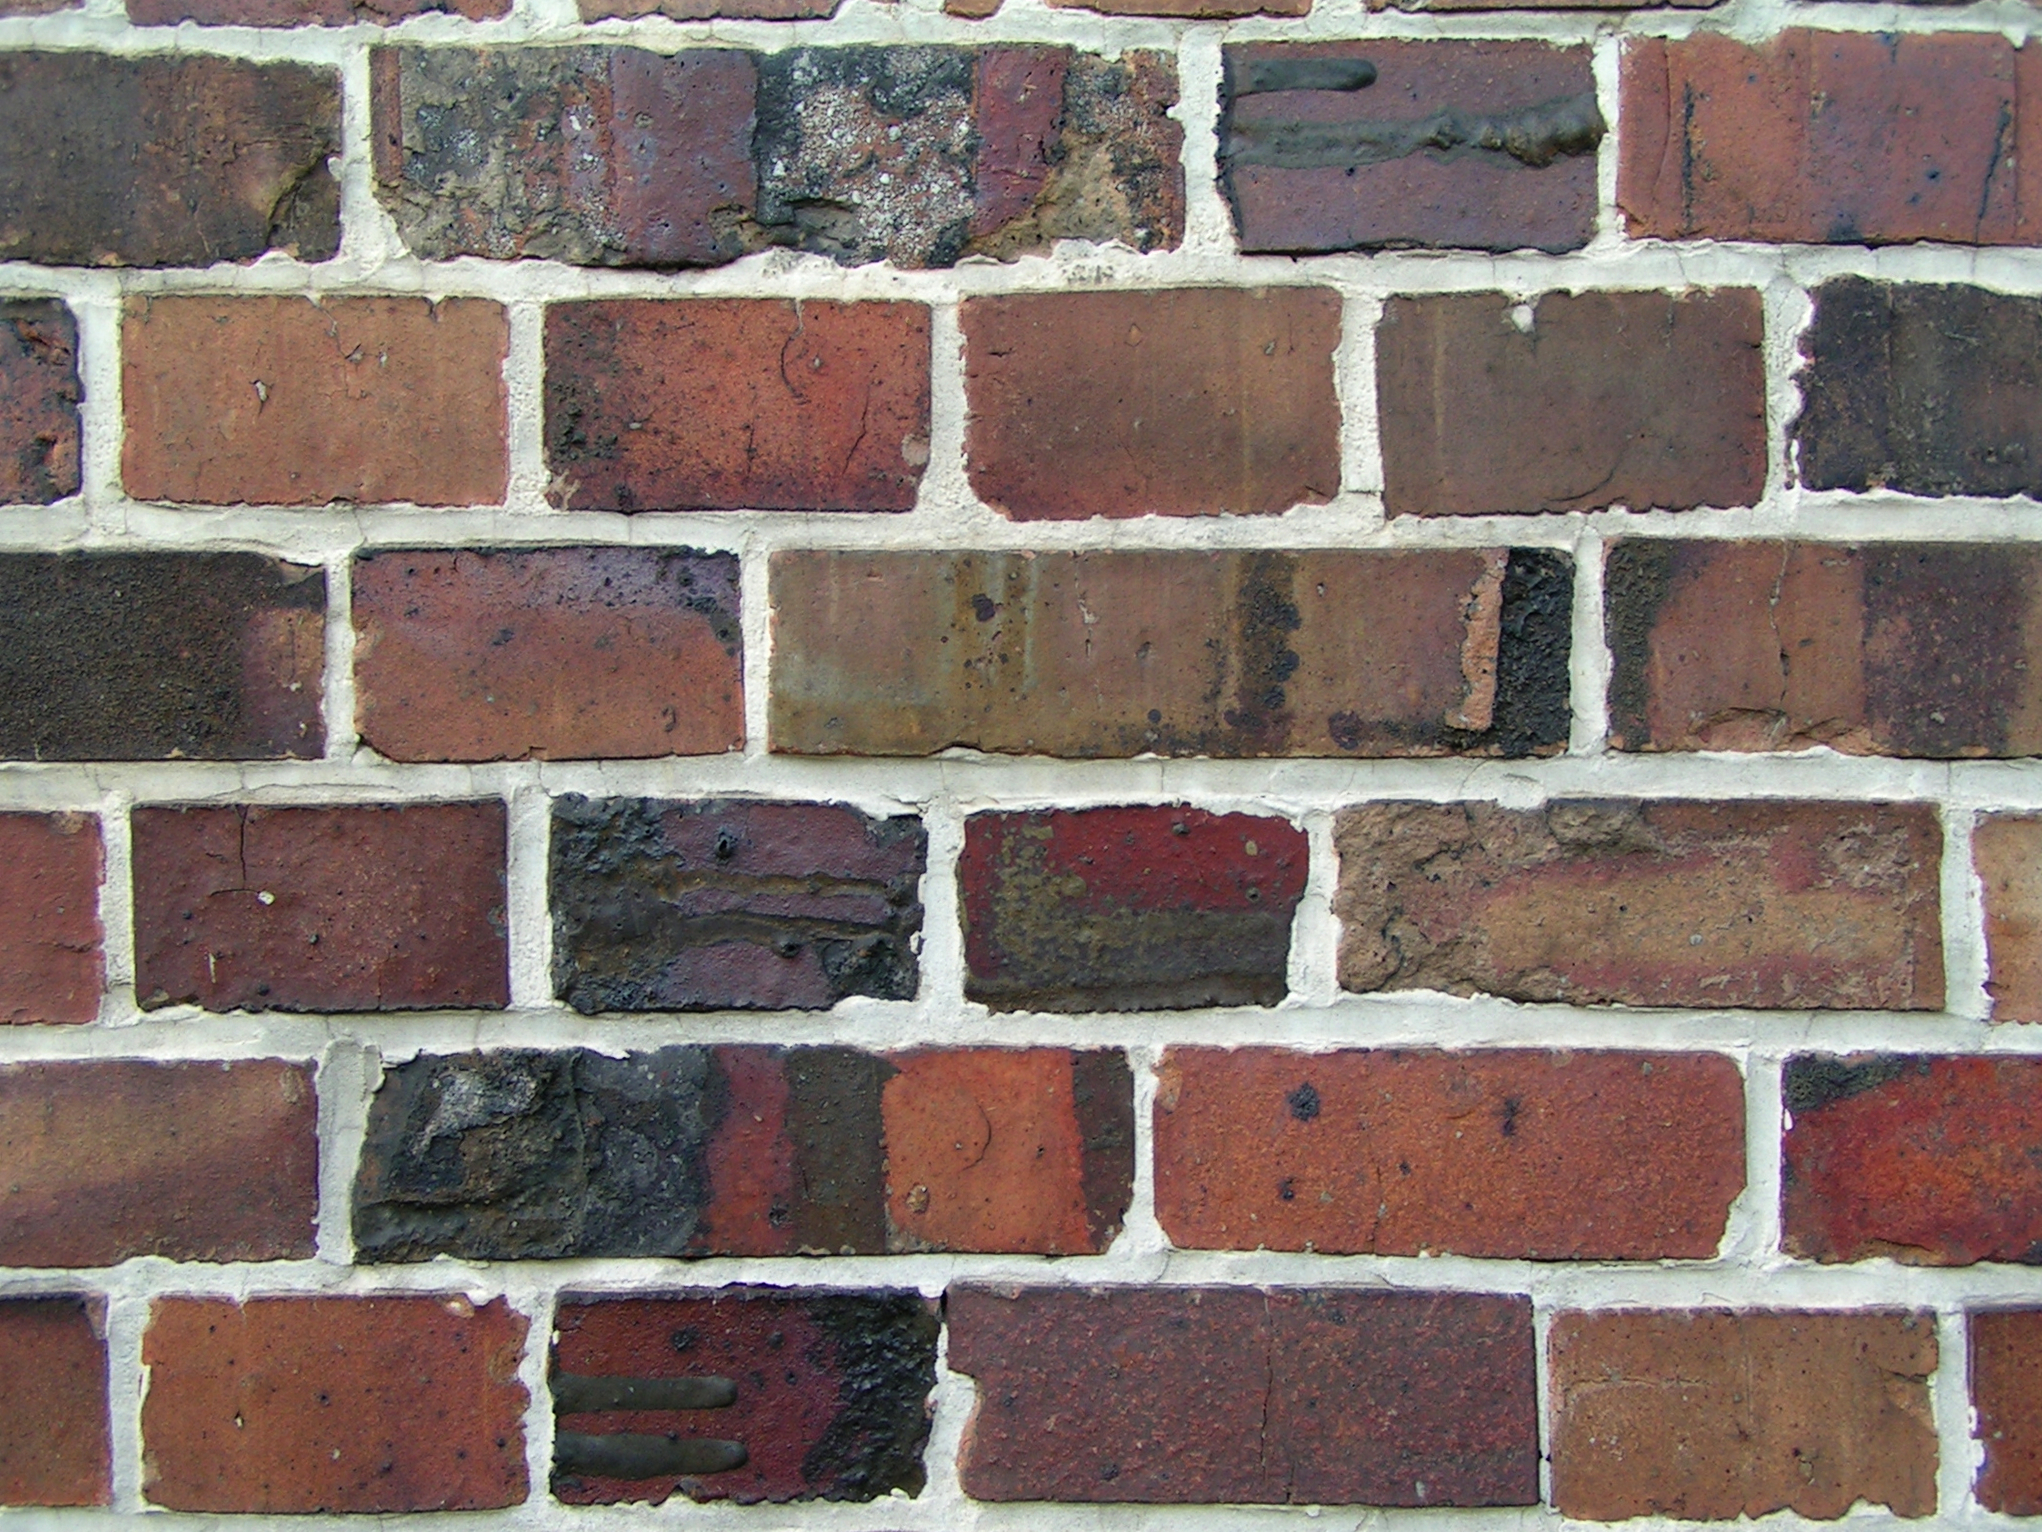 Looking to brighten up a dull brick facade?